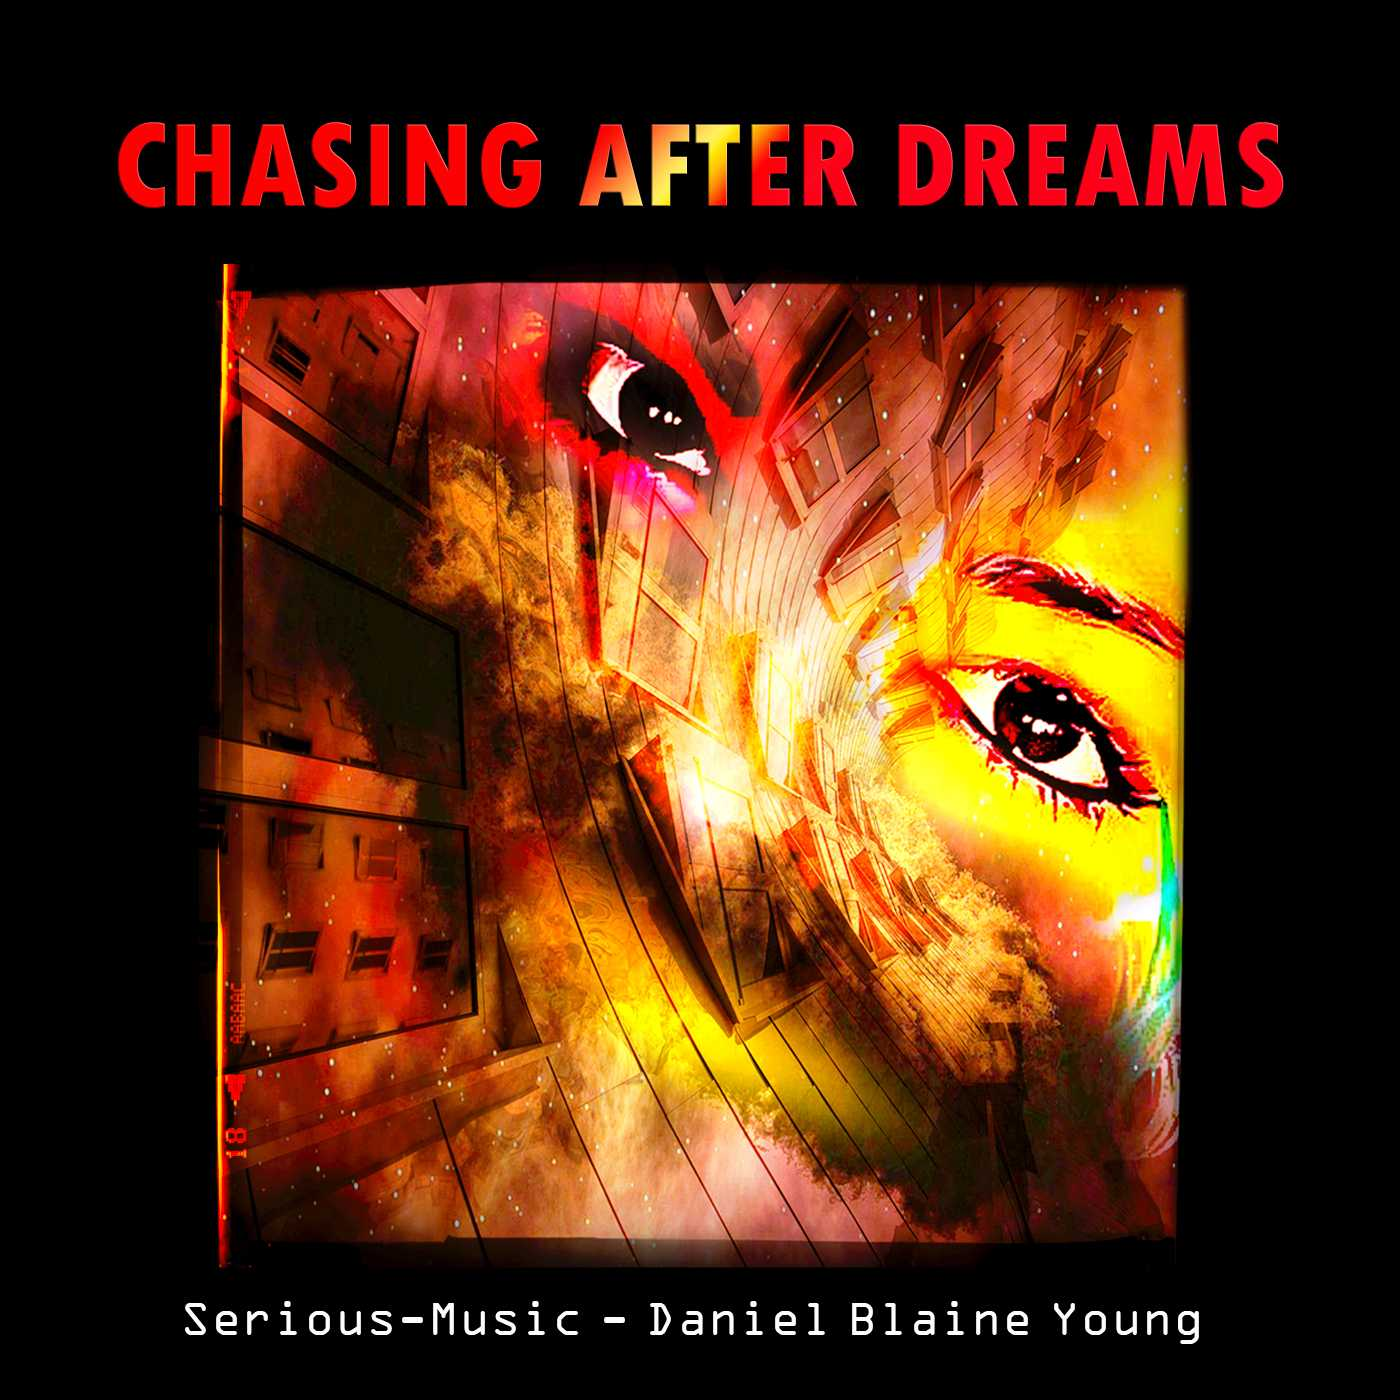 Chasing After Dreams feat. Danlb Young - Album CHASING AFTER DREAMS